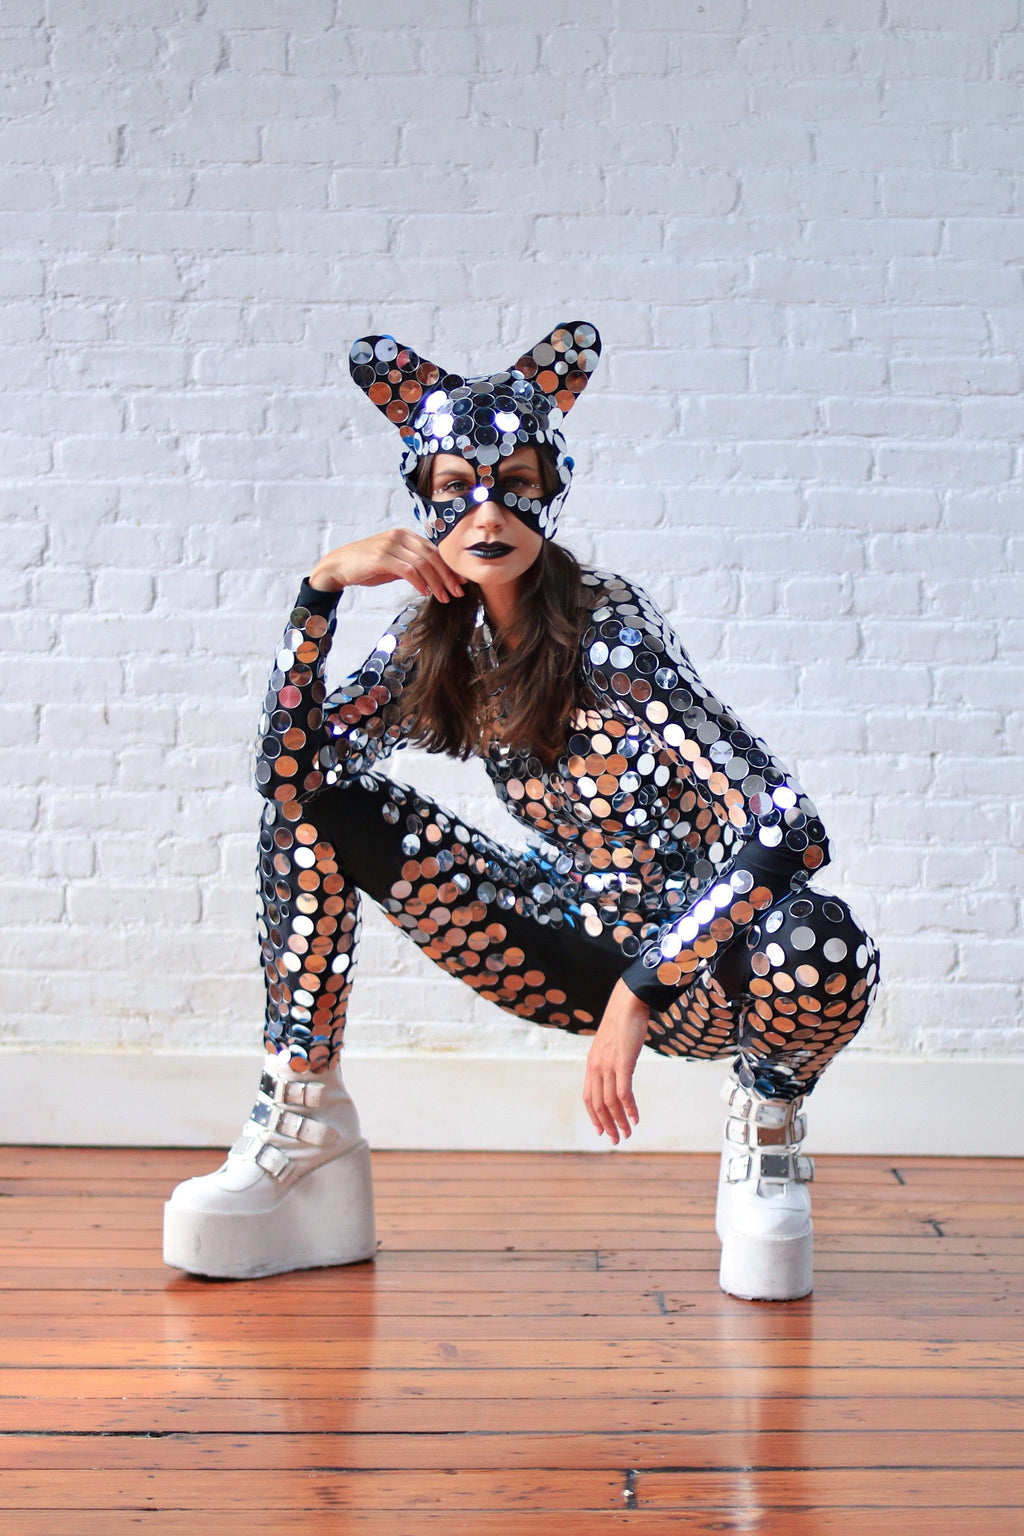 Space Kat mirrored suit